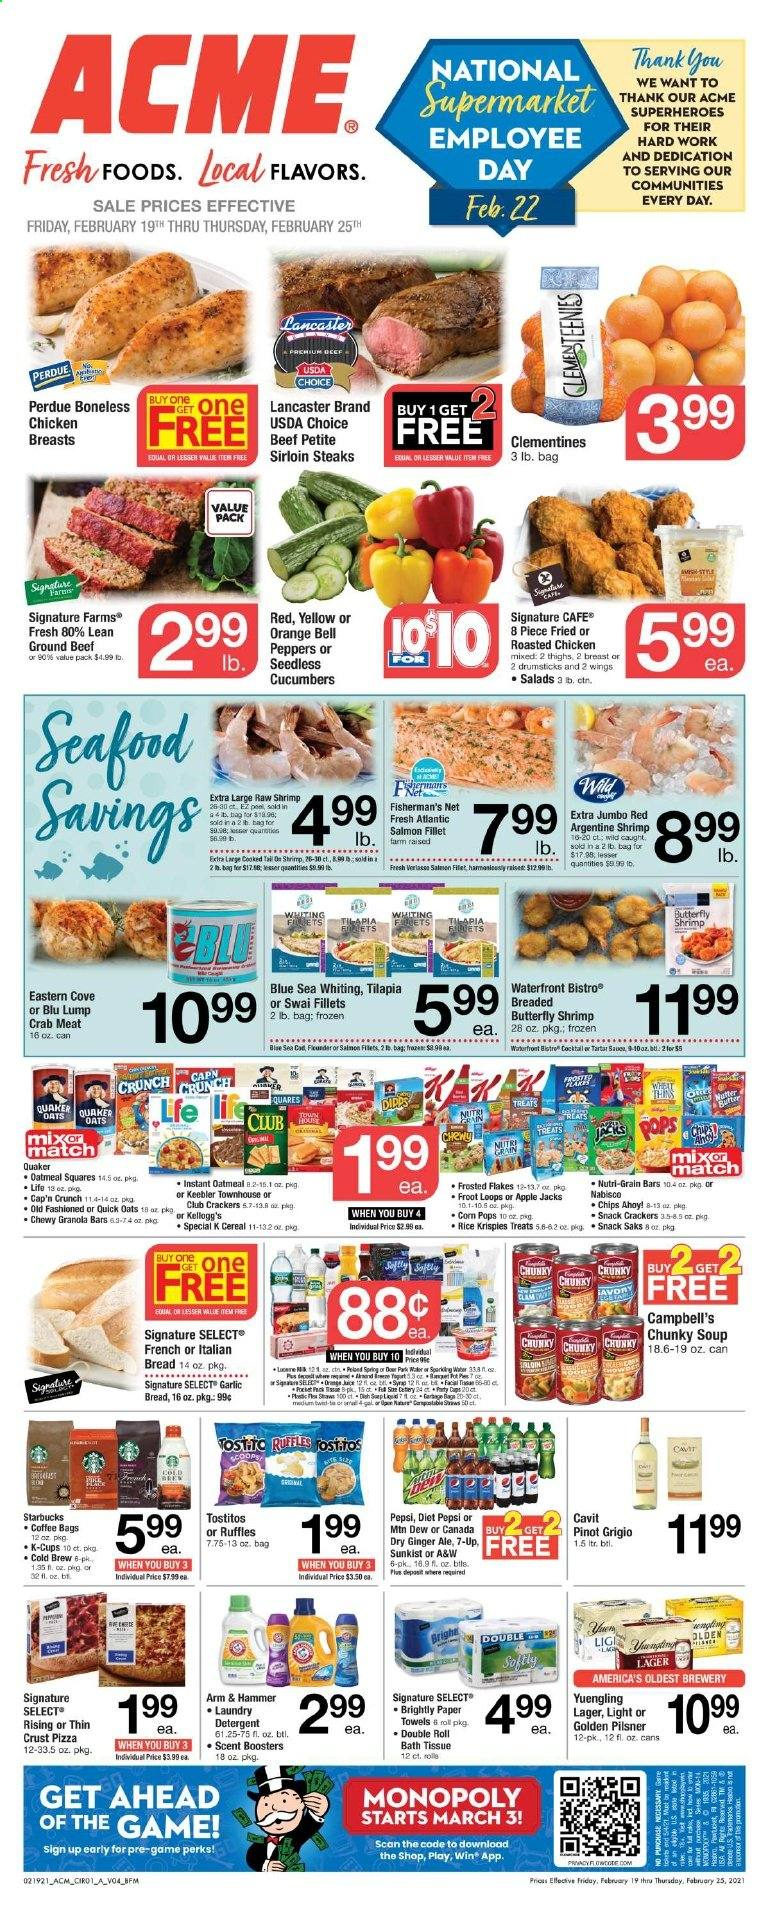 ACME Flyer - 02.19.2021 - 02.25.2021 - Sales products - fillets, bread, crab meat, salmon, salmon fillet, tilapia, crab, shrimps, whiting, Campbell's, pizza, soup, Treats, Quaker, roasted chicken, corn, bell peppers, cracker, crackers, Kellogg's, snack, ARM & HAMMER, oatmeal, oats, cucumbers, garlic, cereals, granola bar, Rice Krispies, Cap'n Crunch, Quick Oats, Frosted Flakes, Corn Pops, ginger ale, Pepsi, water, coffee, Starbucks, coffee capsules, K-Cups, Pinot Grigio, beer, Yuengling, Lager, Golden Pilsner, chicken, chicken breast, sirloin steak, ground beef, bath tissue, paper towel, kitchen towels, paper towels, detergent, laundry detergent, cup, Lee, cap, monopoly, clementines, granola bars, orange, pilsner, peppers. Page 1.